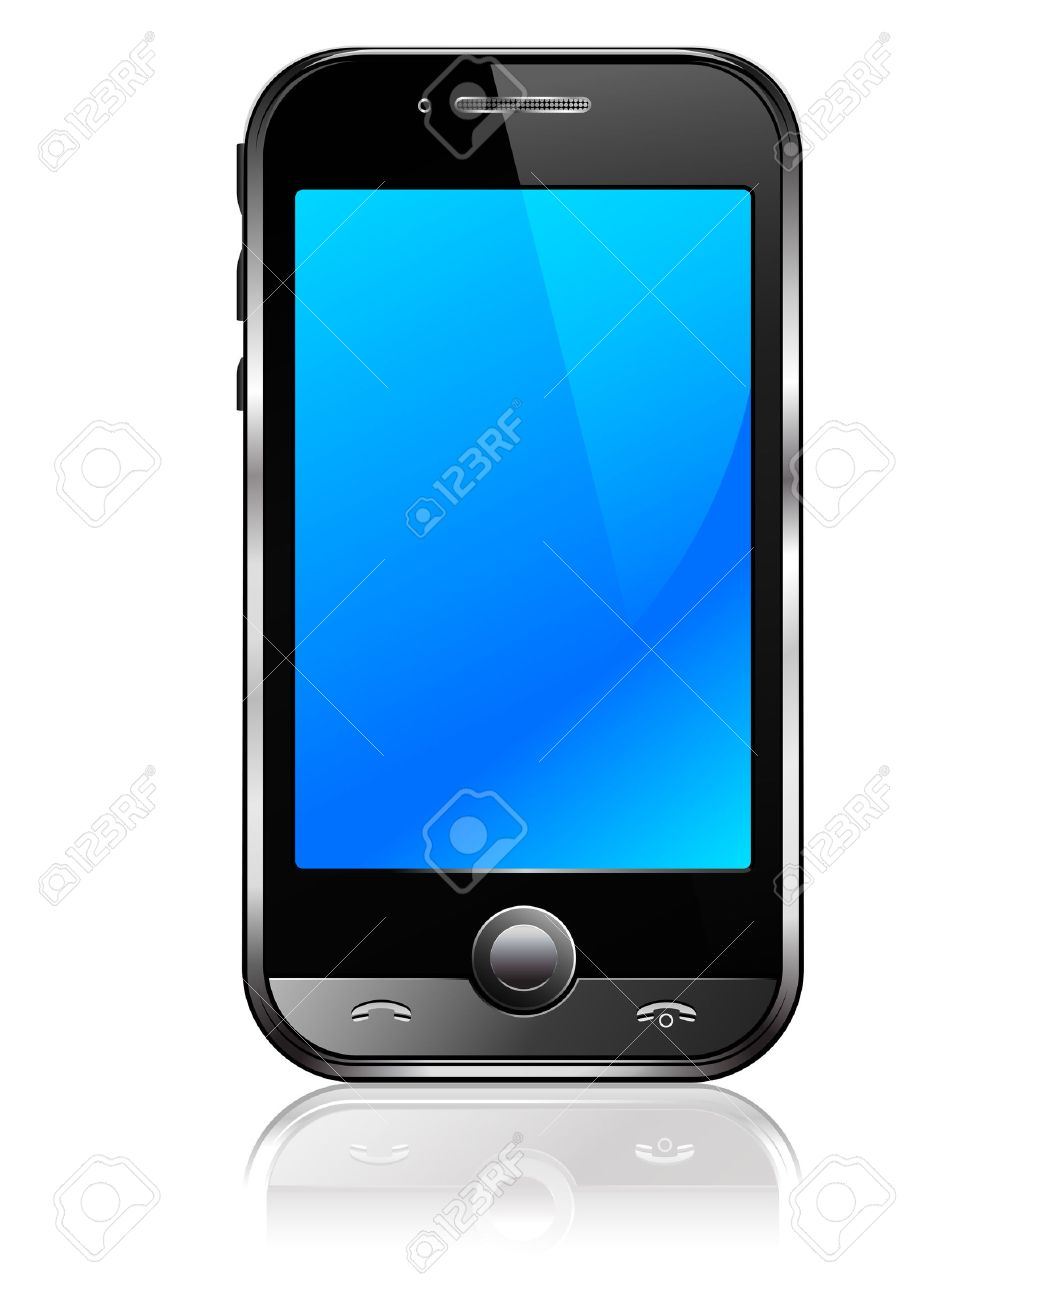 Cell Smart Mobile Phone Stock Vector - 9088021